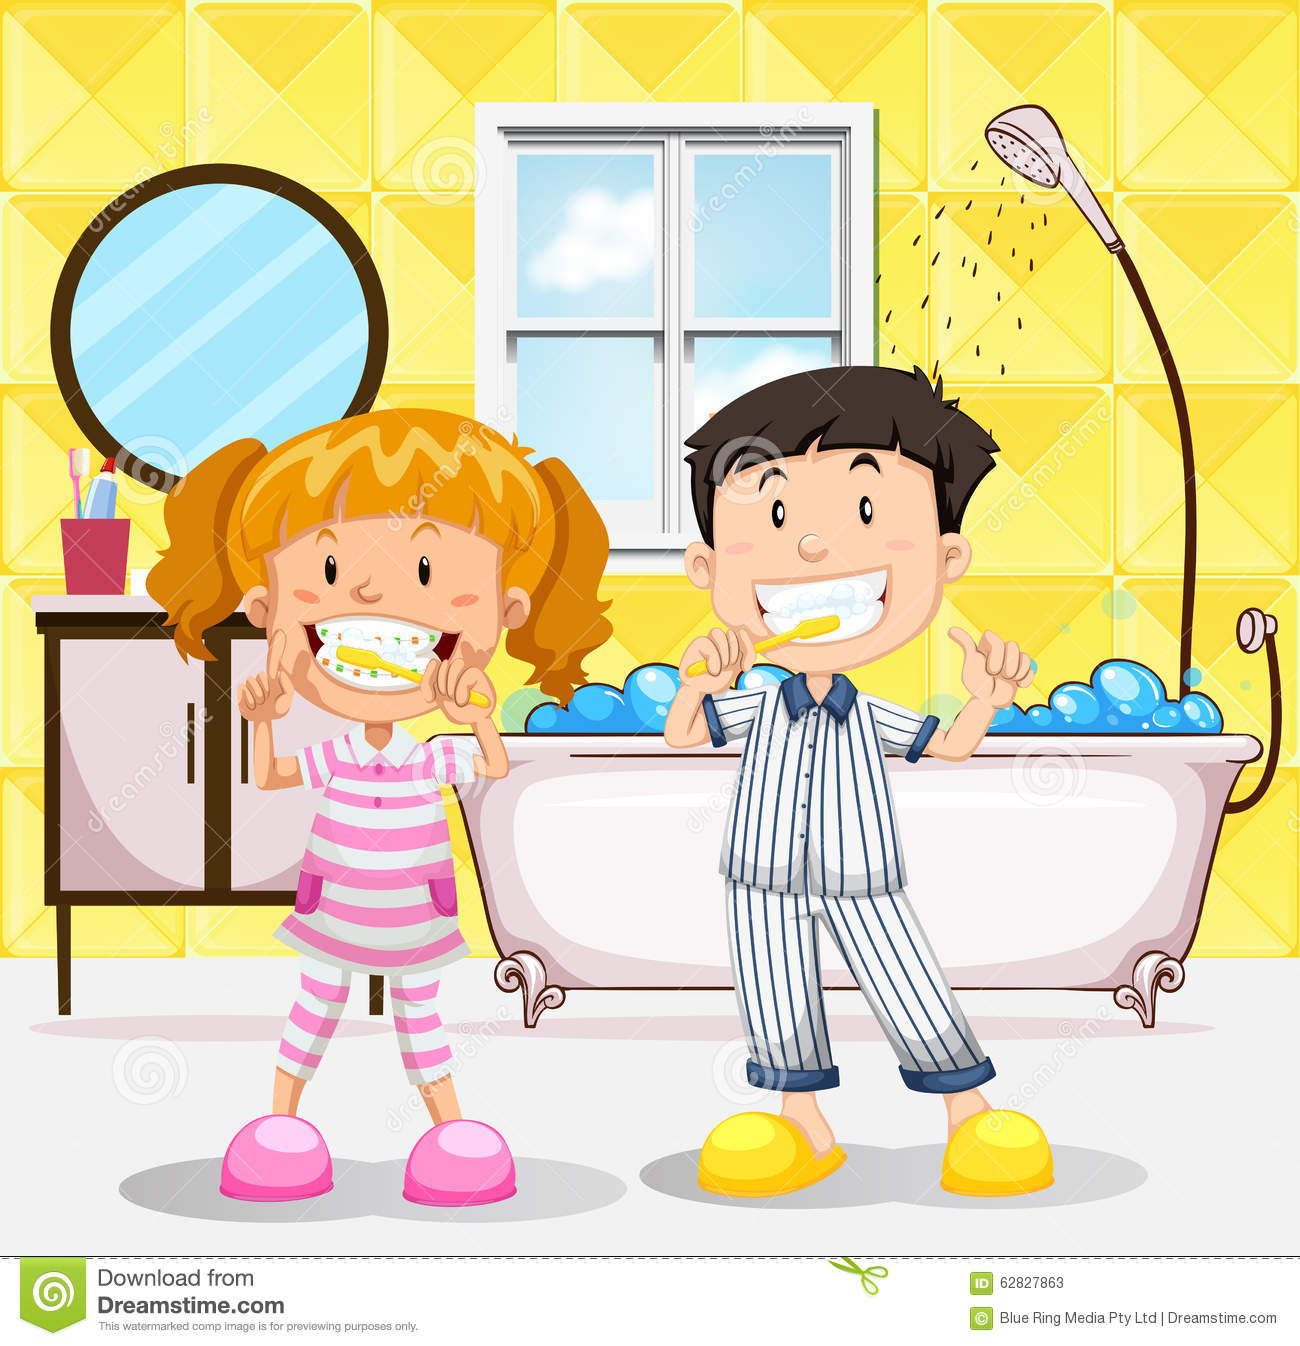 Bathroom drawing for kids - Boy And Girl Brushing Teeth In The Bathroom